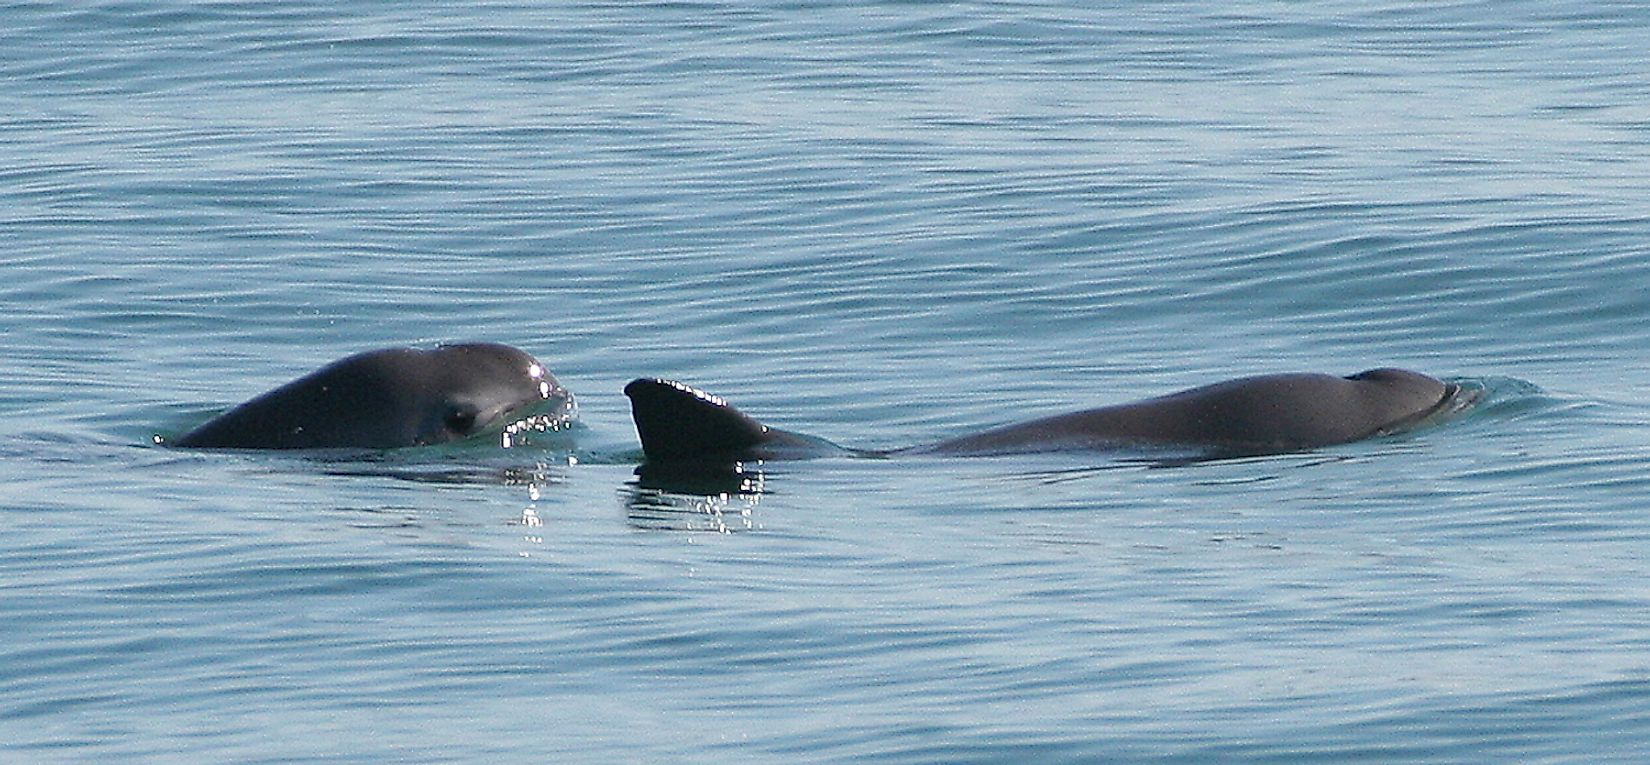 Two vaquitas. Image credit: Paula Olson, NOAA/Public domain